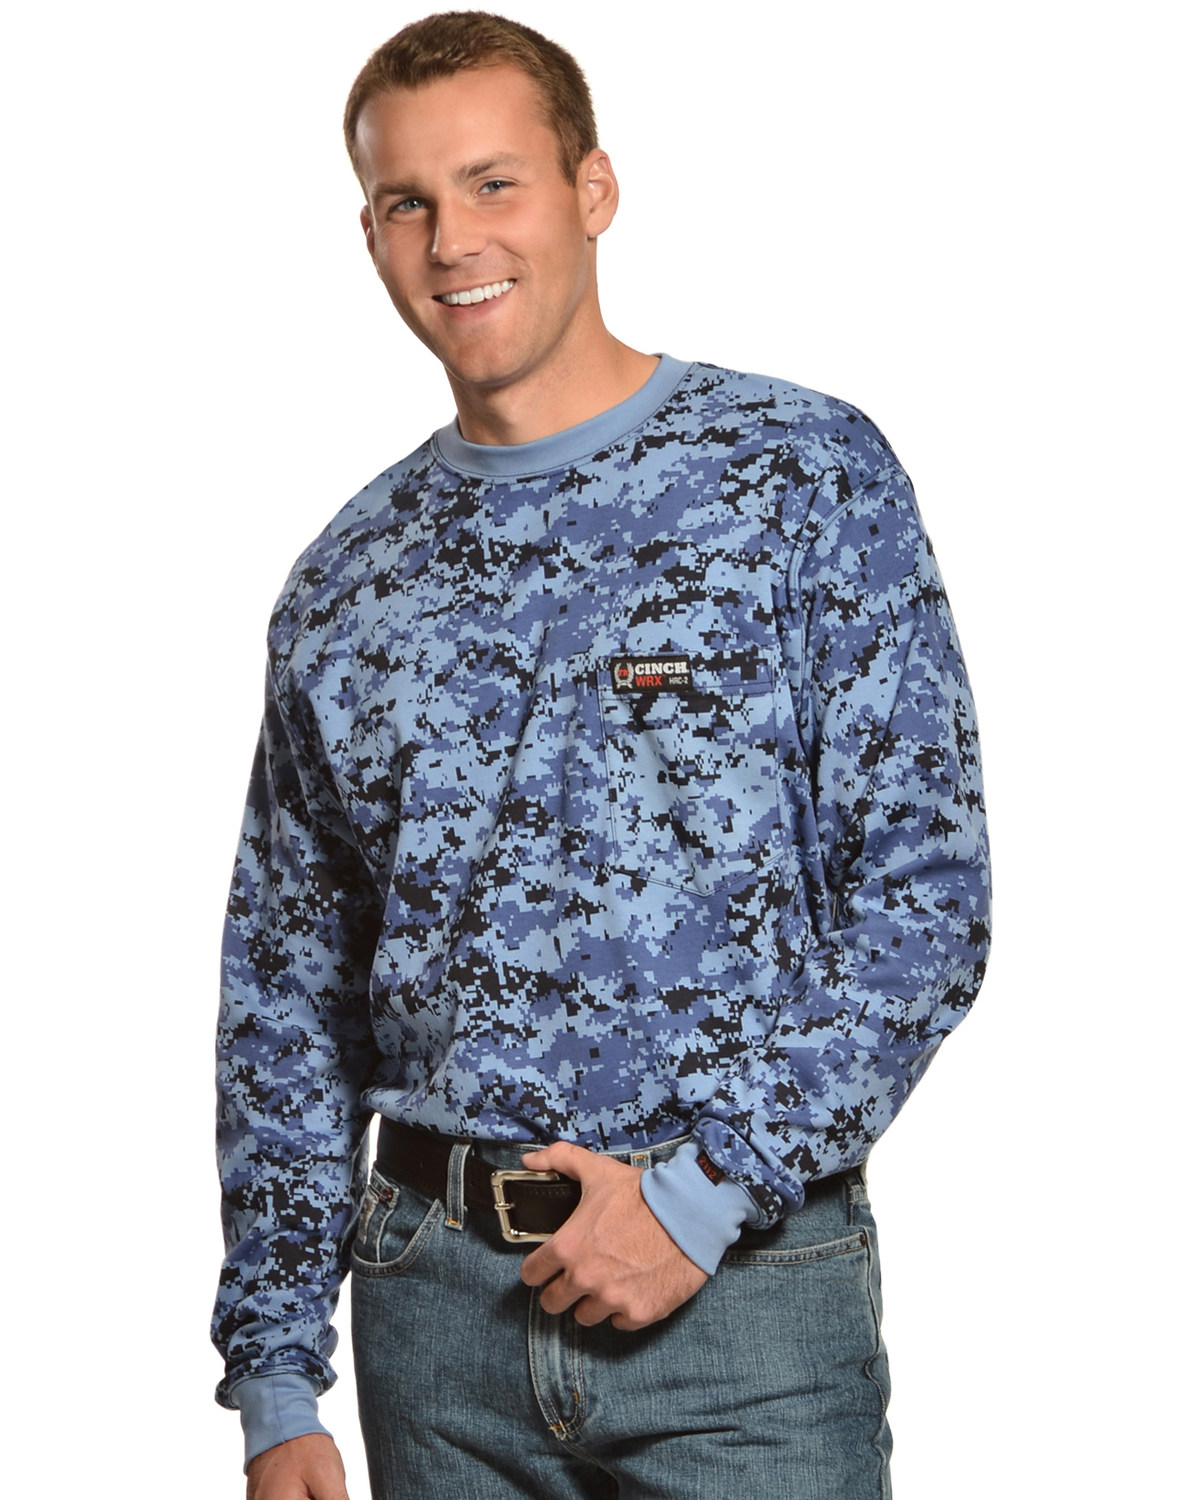 Cinch wrx flame resistant long sleeve camo t shirt boot barn for Cinch flame resistant shirts